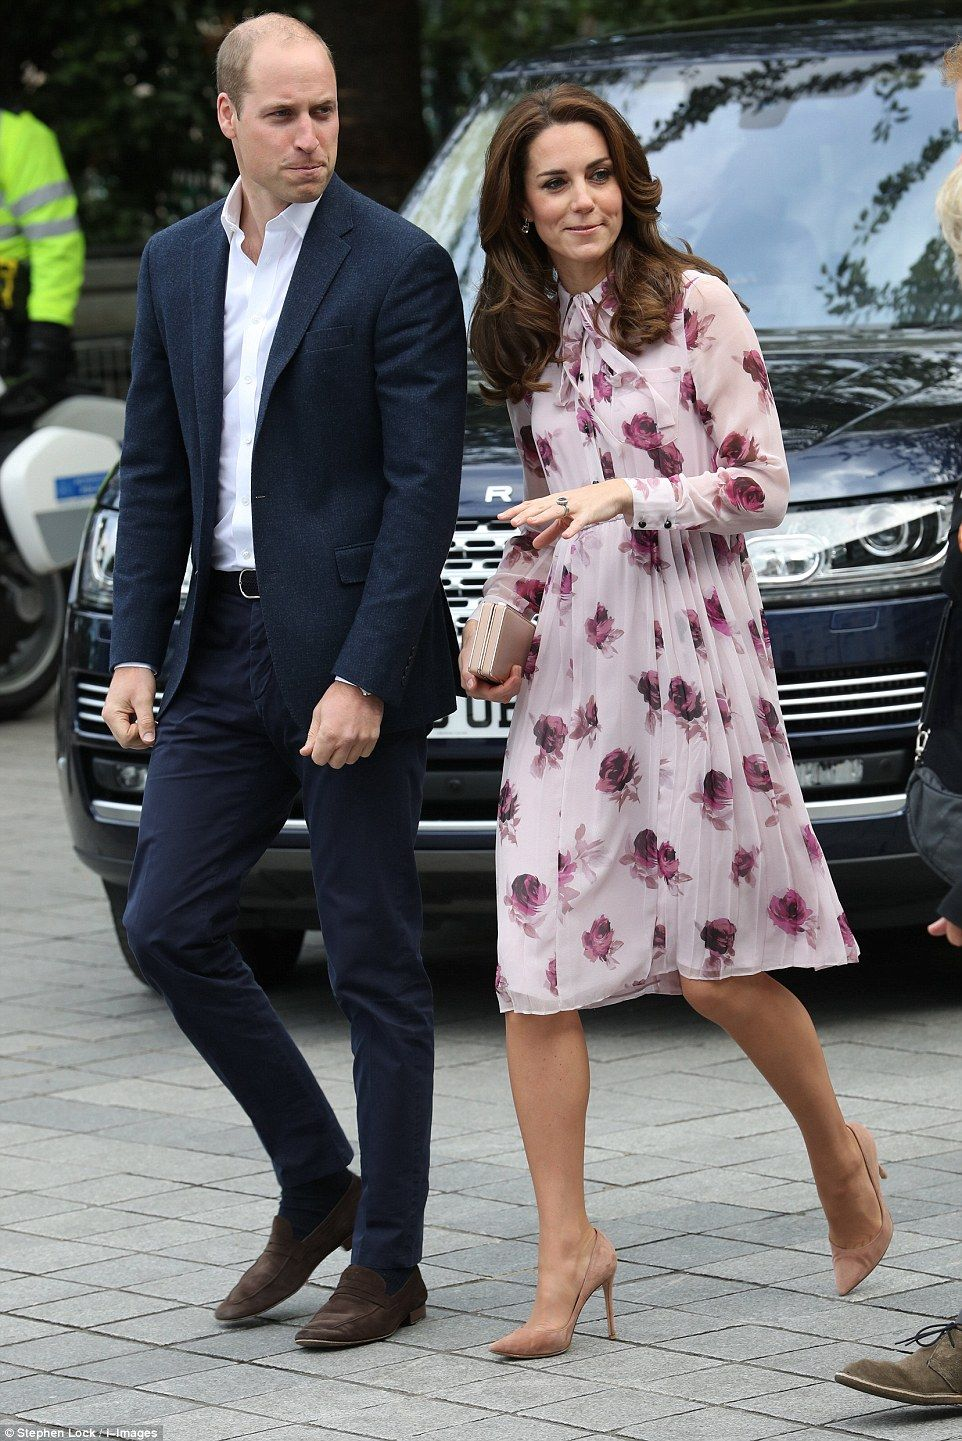 The Ss Of Cambridge Looked Surprisingly Summery Today In A Pink Rose Print Dress For Day Engagements London